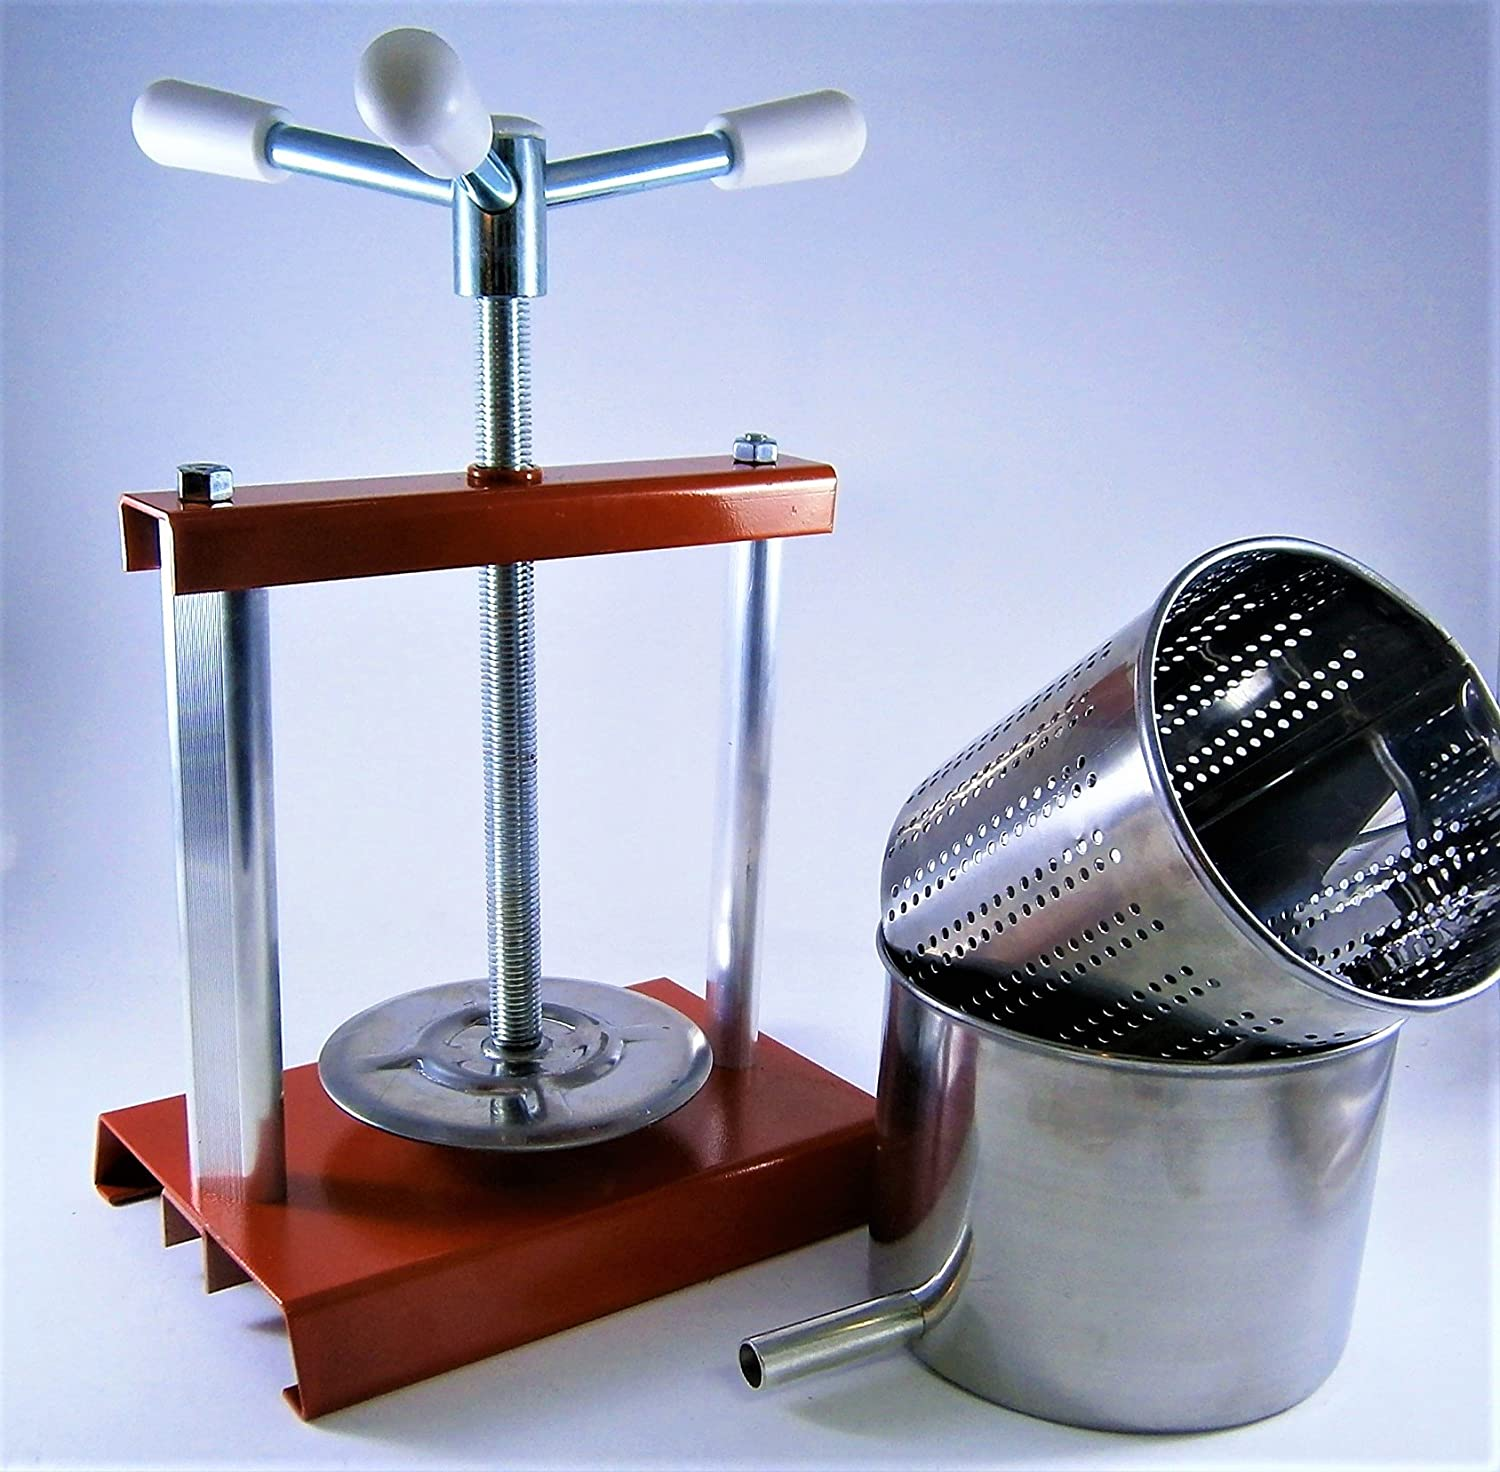 Cheese Press 5,9L with Stainless Steel Press Basket (Mold) 4,3 L - Fruit Press - Wine Press - Made in Italy AlcoFermBrew